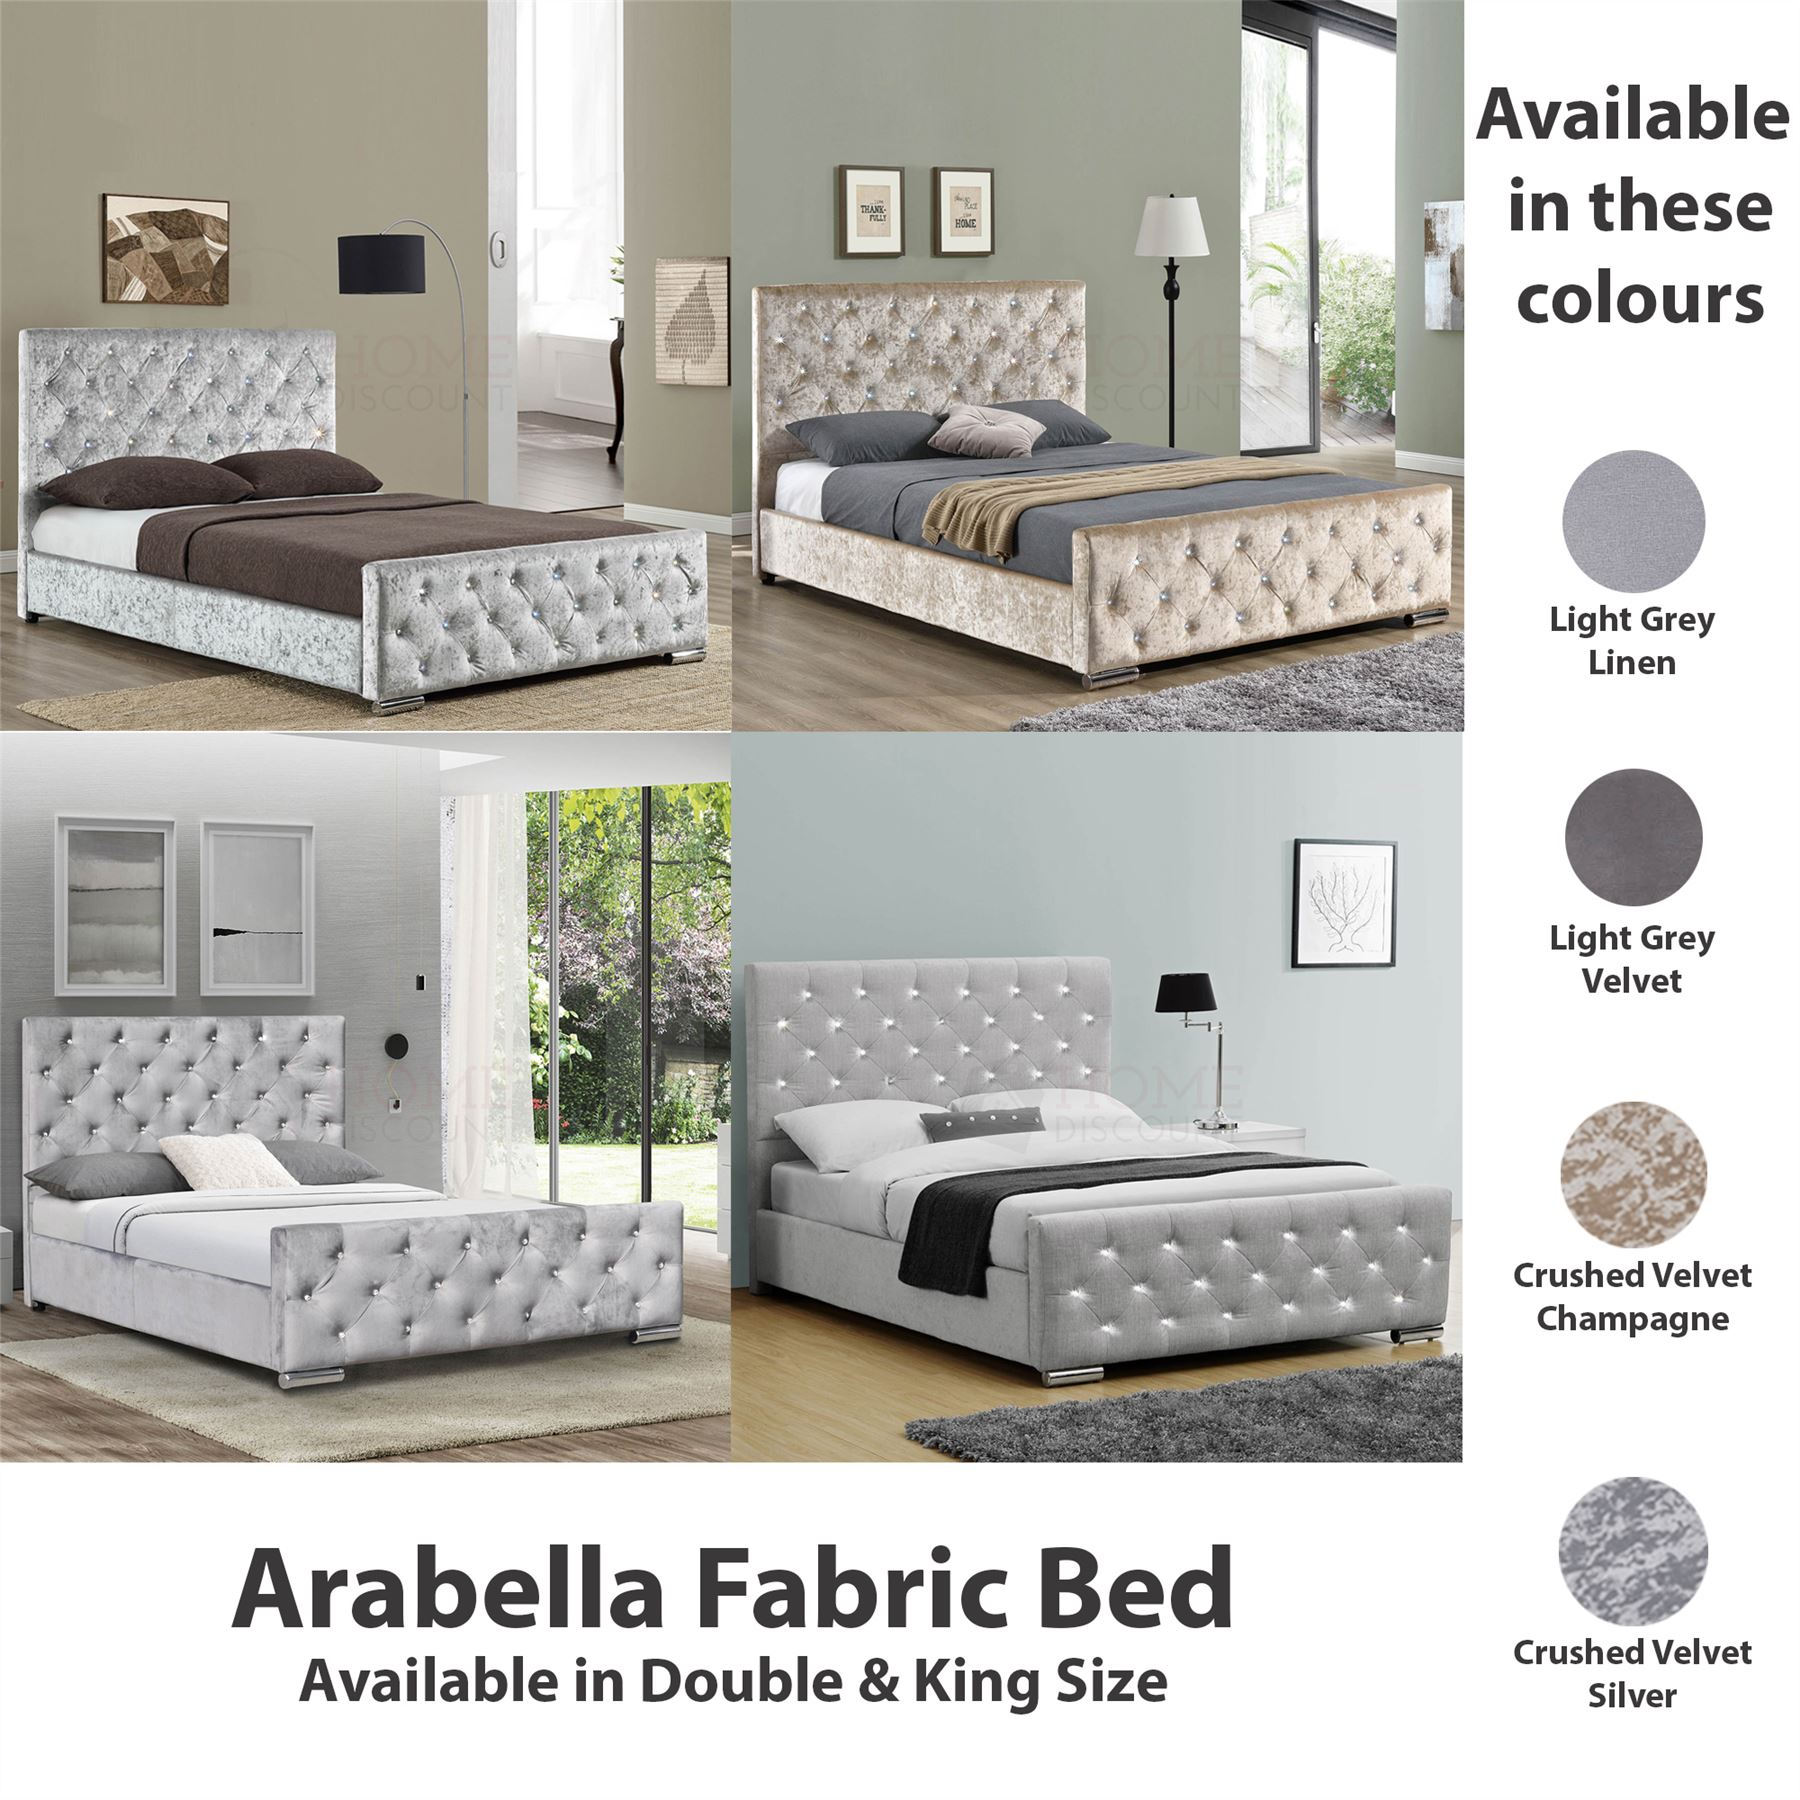 Mattress Bed Modern Double Bed Frame Upholstered Headboard Grey Fabric 4ft6 5ft King Size Home Furniture Diy Rpqualitycontrol Com Br